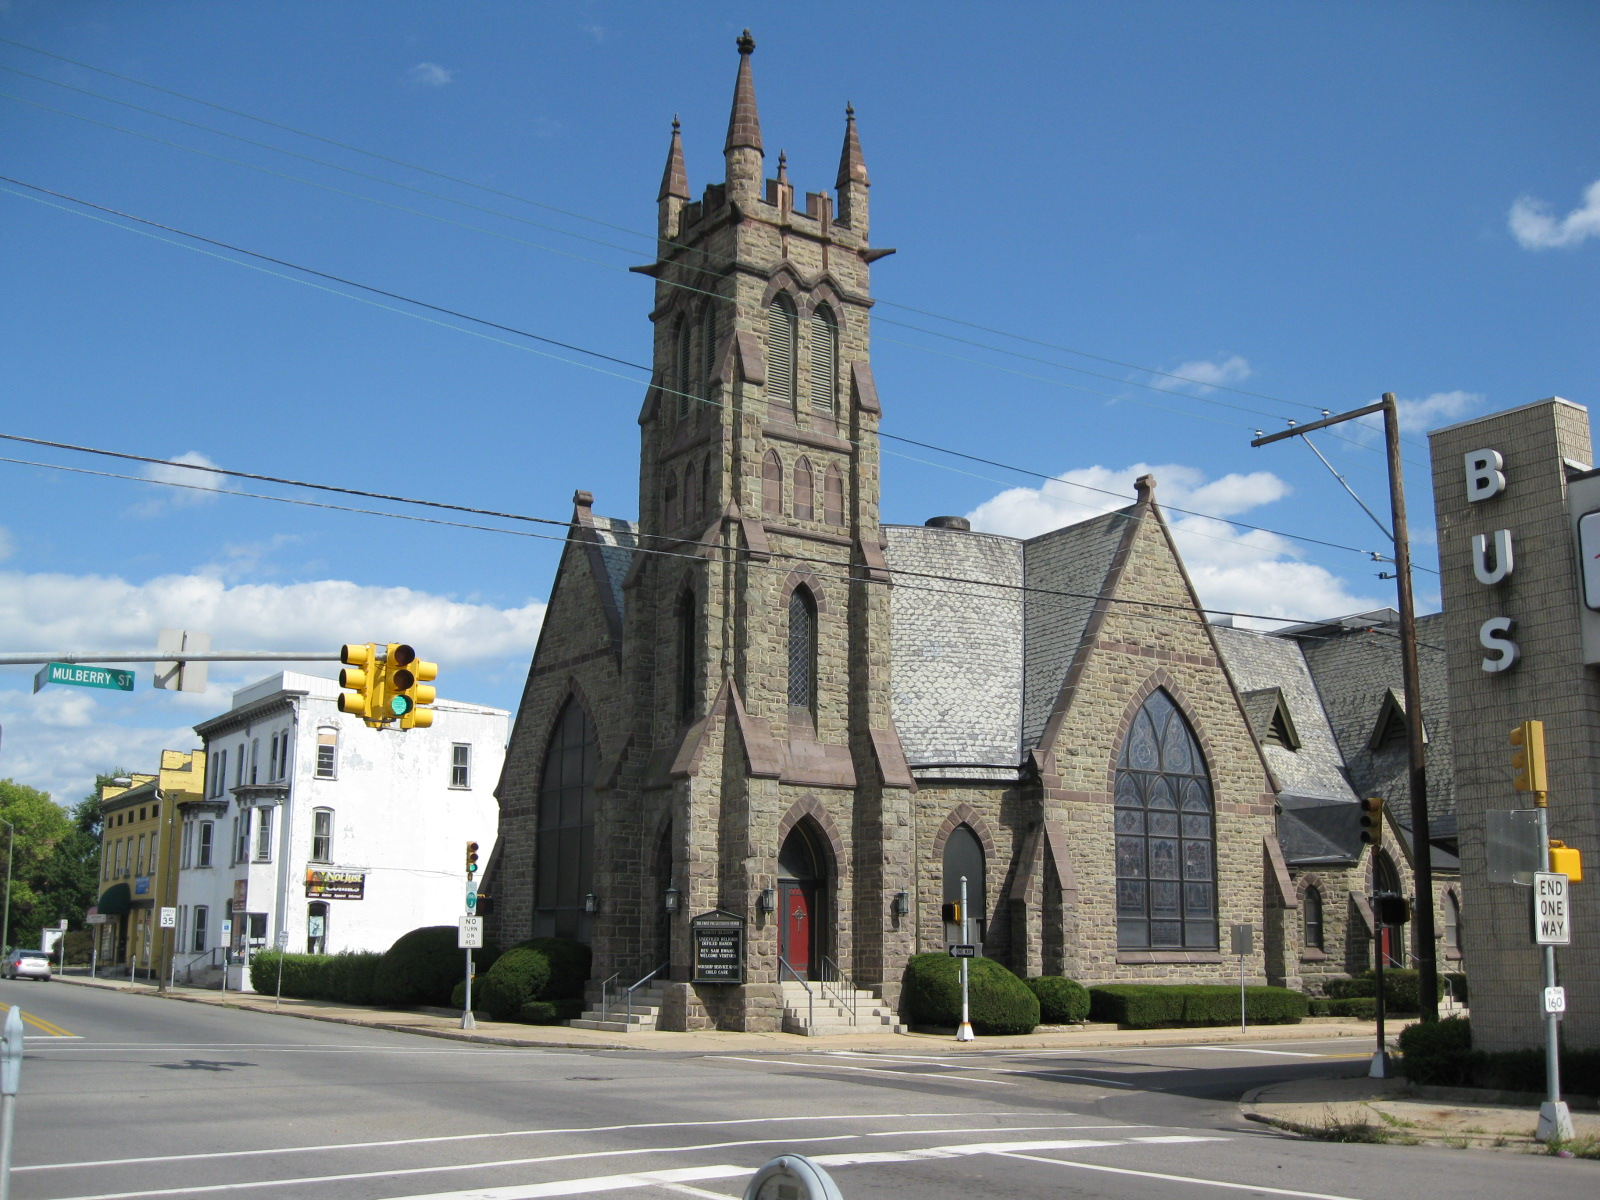 williamsport pa dating Looking for williamsport pa obits   please check out and read our maneval allen redmond cremation & funeral home obits for the families entrusted into our care.